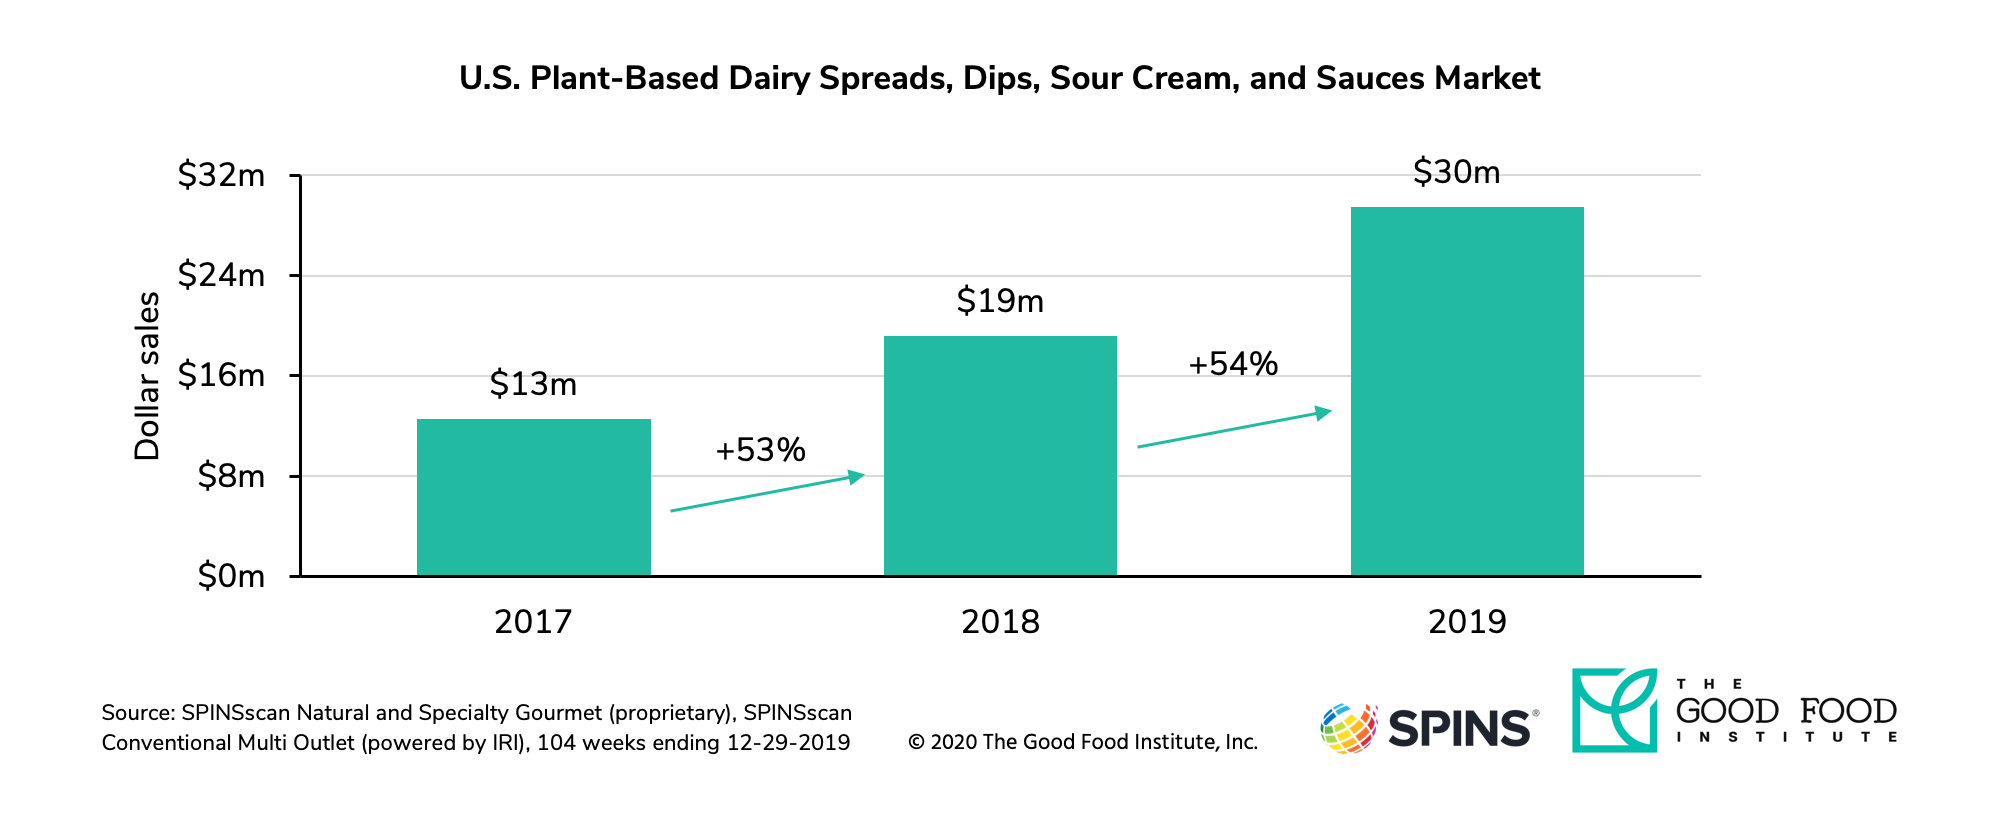 U.S. retail sales of plant-based spreads, dips, sour cream, and sauces grew 54 percent in 2019.